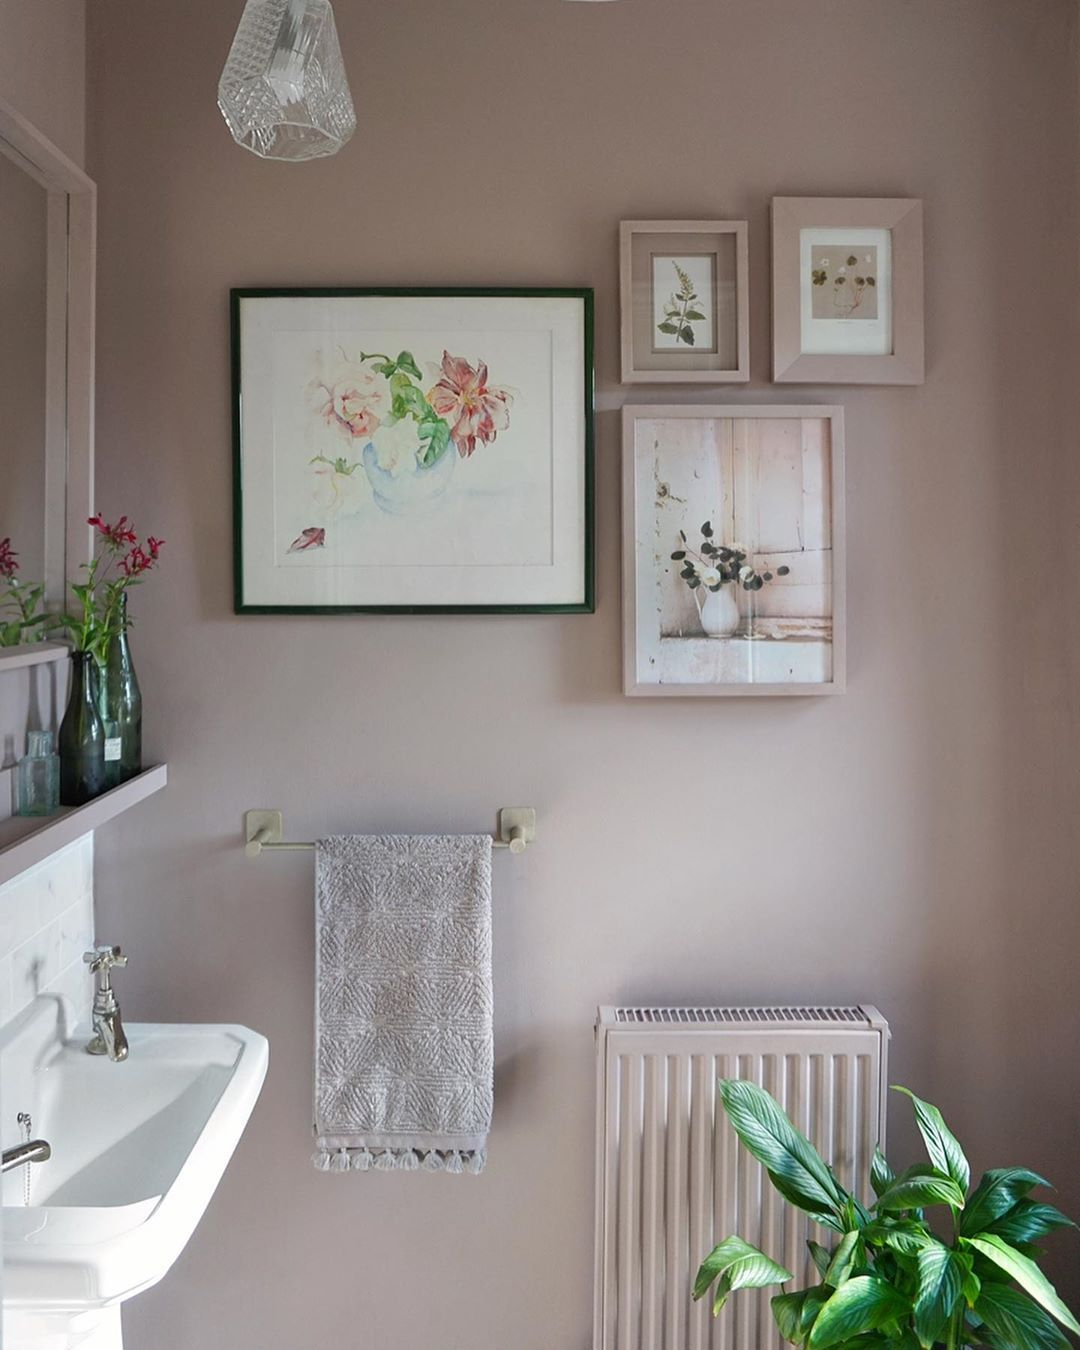 Colour Idea For Downstairs Loo Similar To Rosie S Room Would Go Week With Dark Blue Or Grey Interior Design Blog Farrow And Ball Bedroom Hexagon Tile Floor